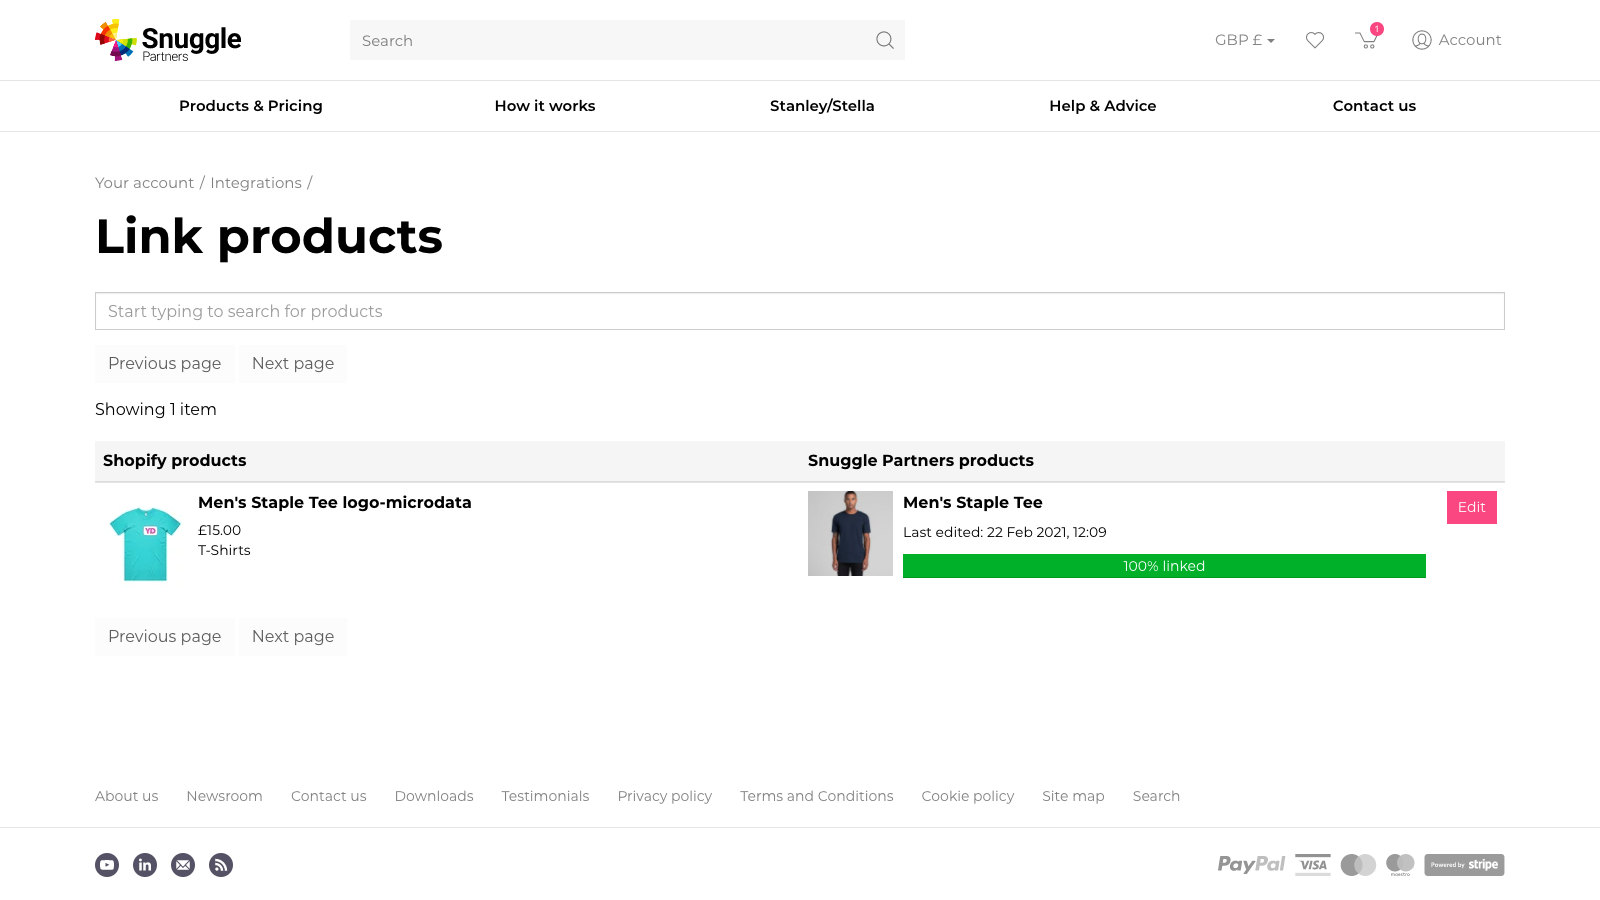 Linking products